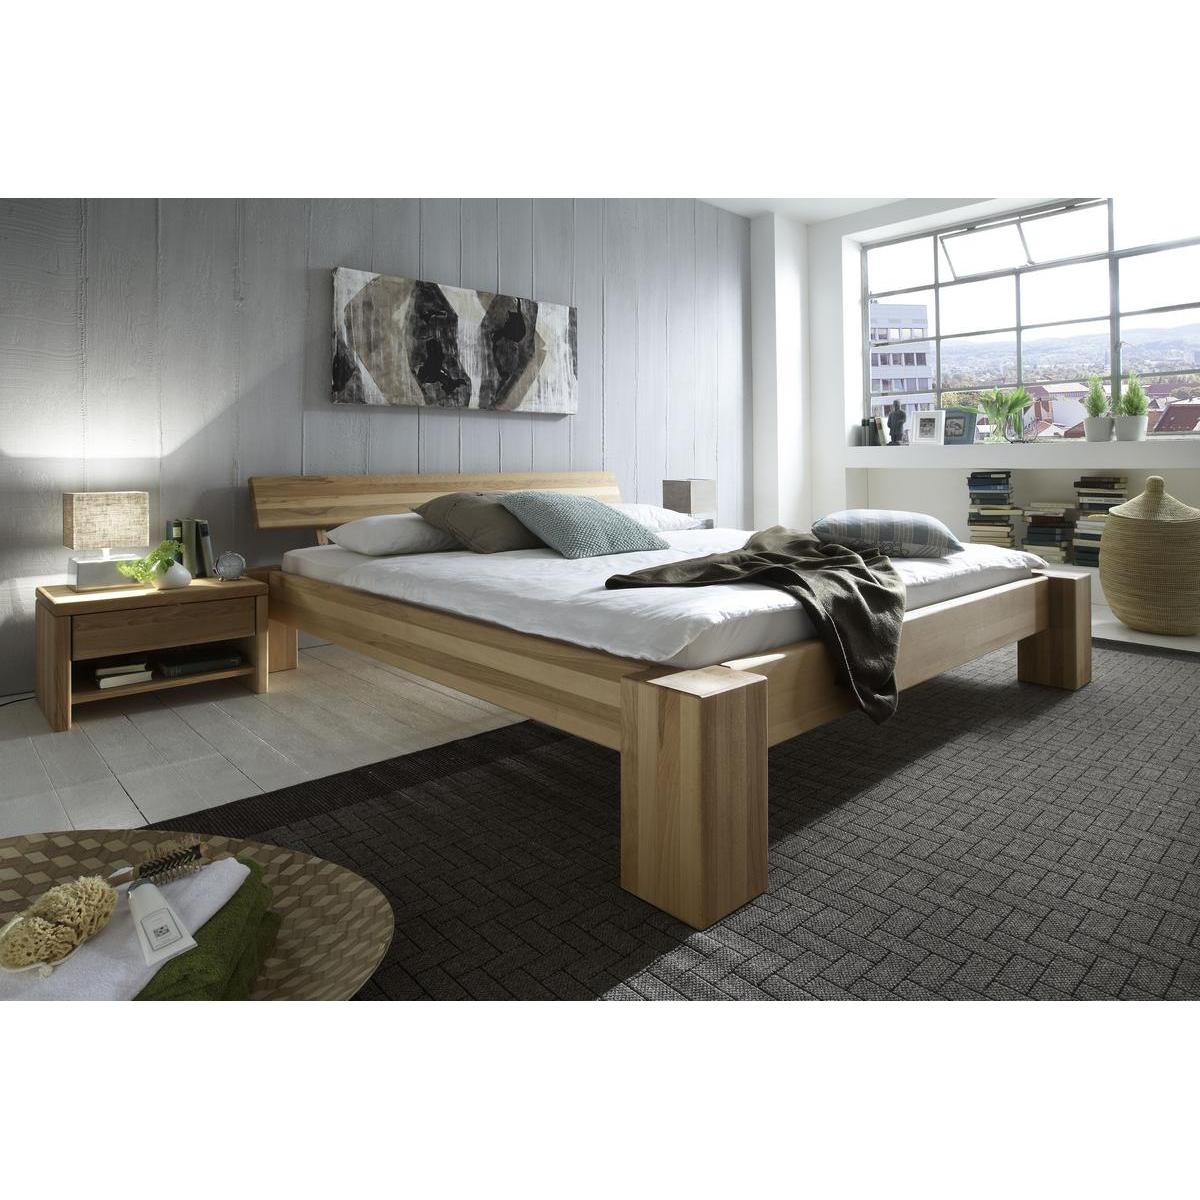 massivholz bett 200x200 xl easy sleep kernbuche massiv ge lt 9520 95 87. Black Bedroom Furniture Sets. Home Design Ideas